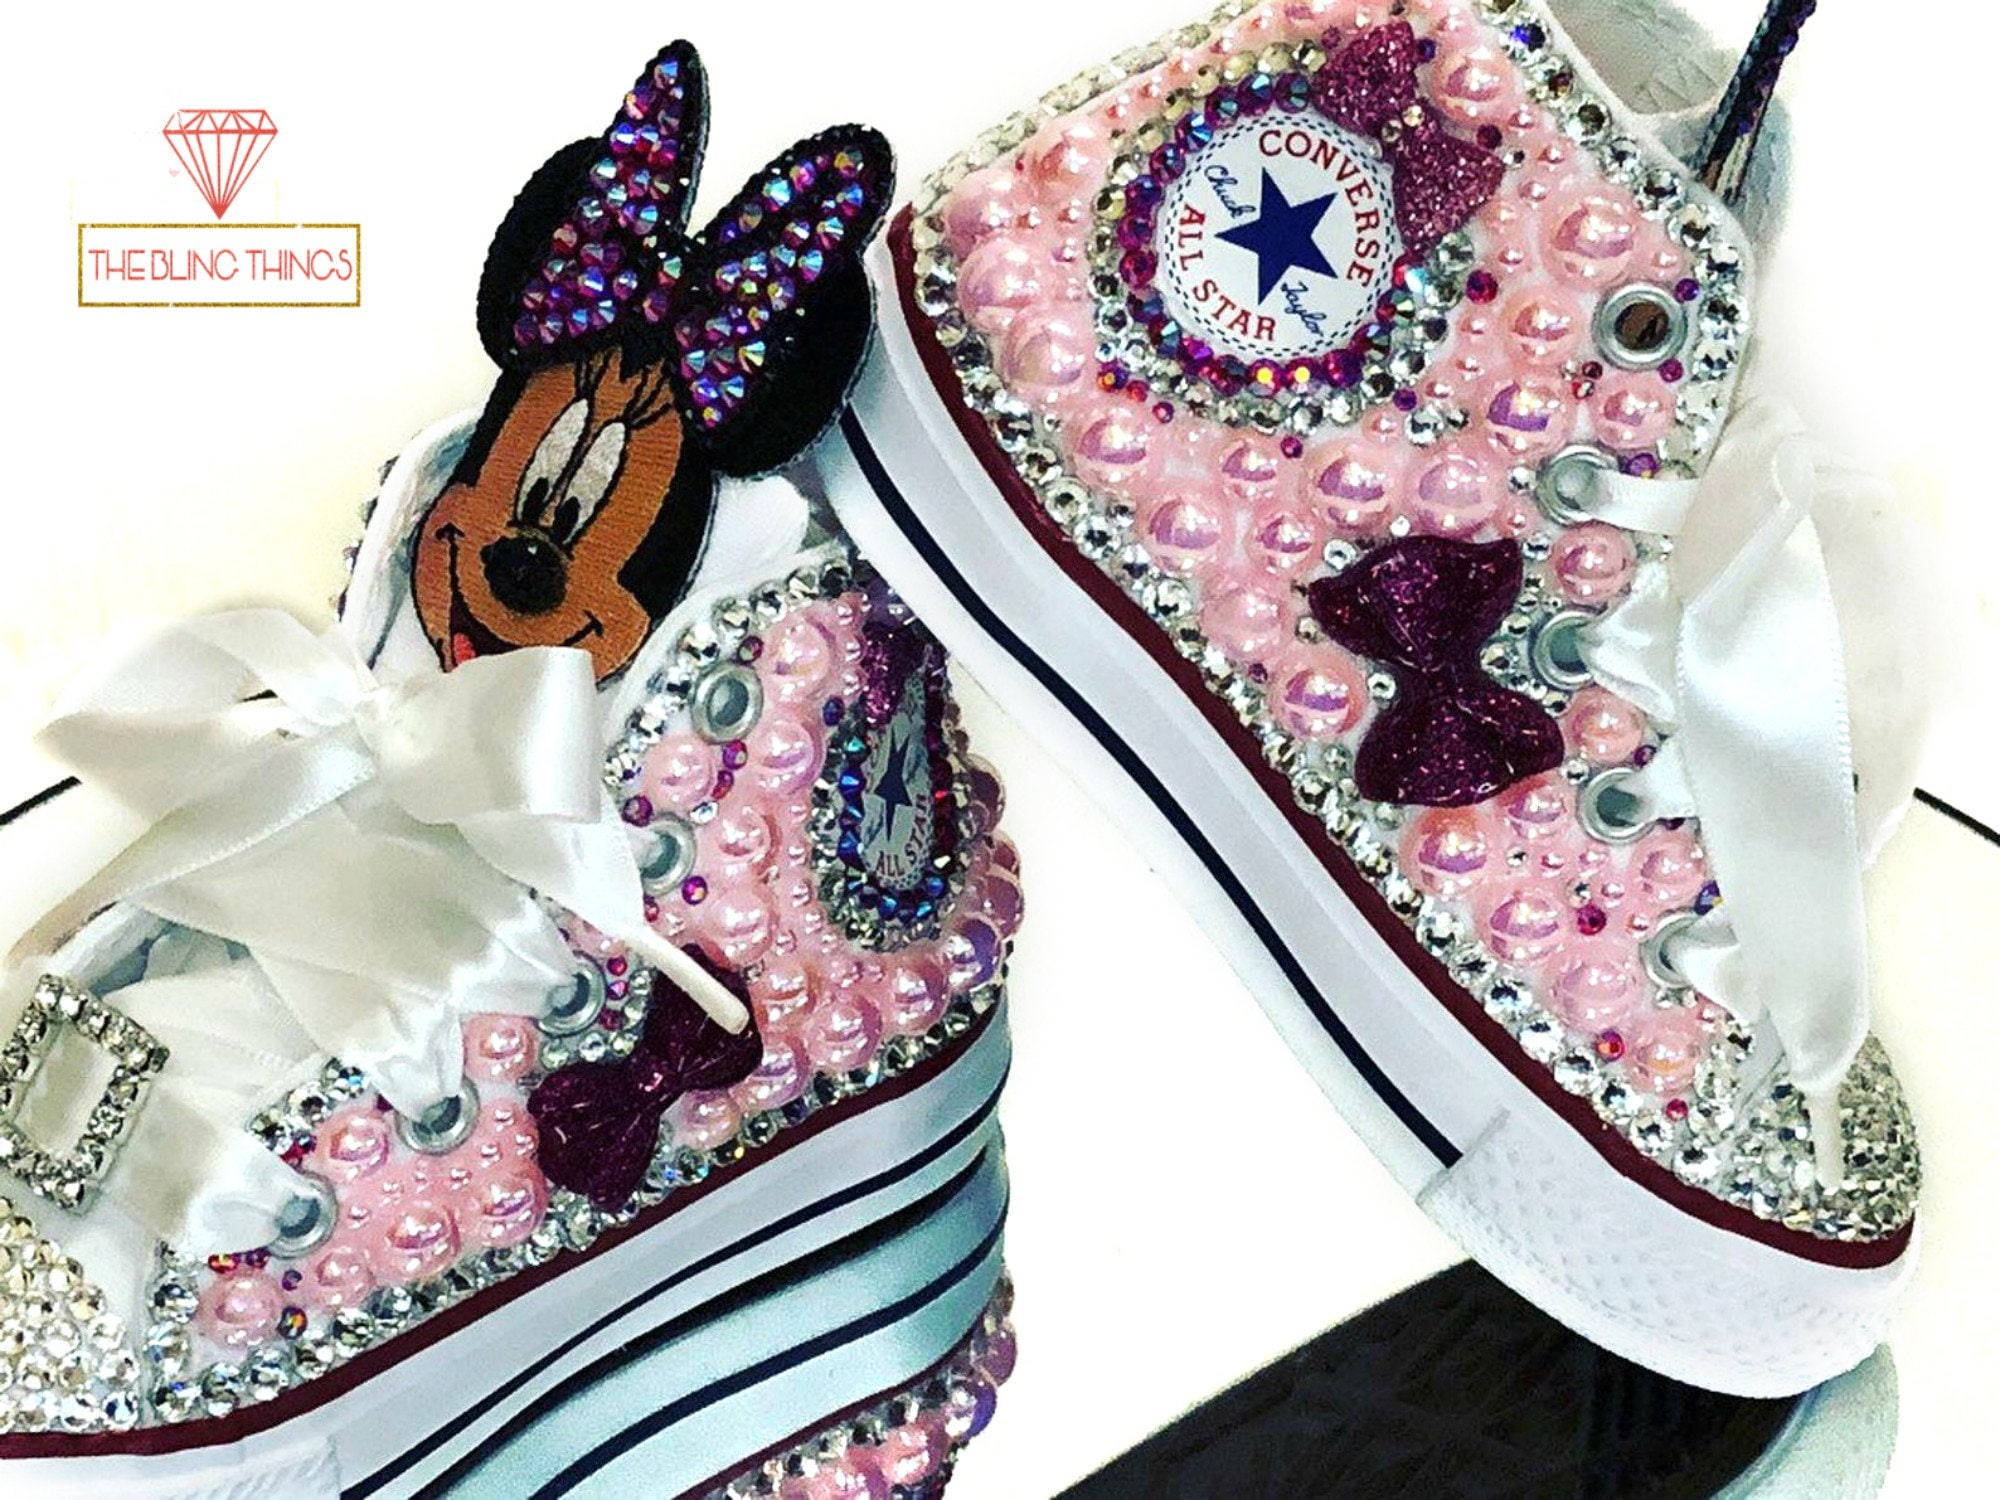 Minnie Mouse Shoes Toddler Converse Bedazzled Sneakers Rhinestone Converse Blinged Converse Custom Converse